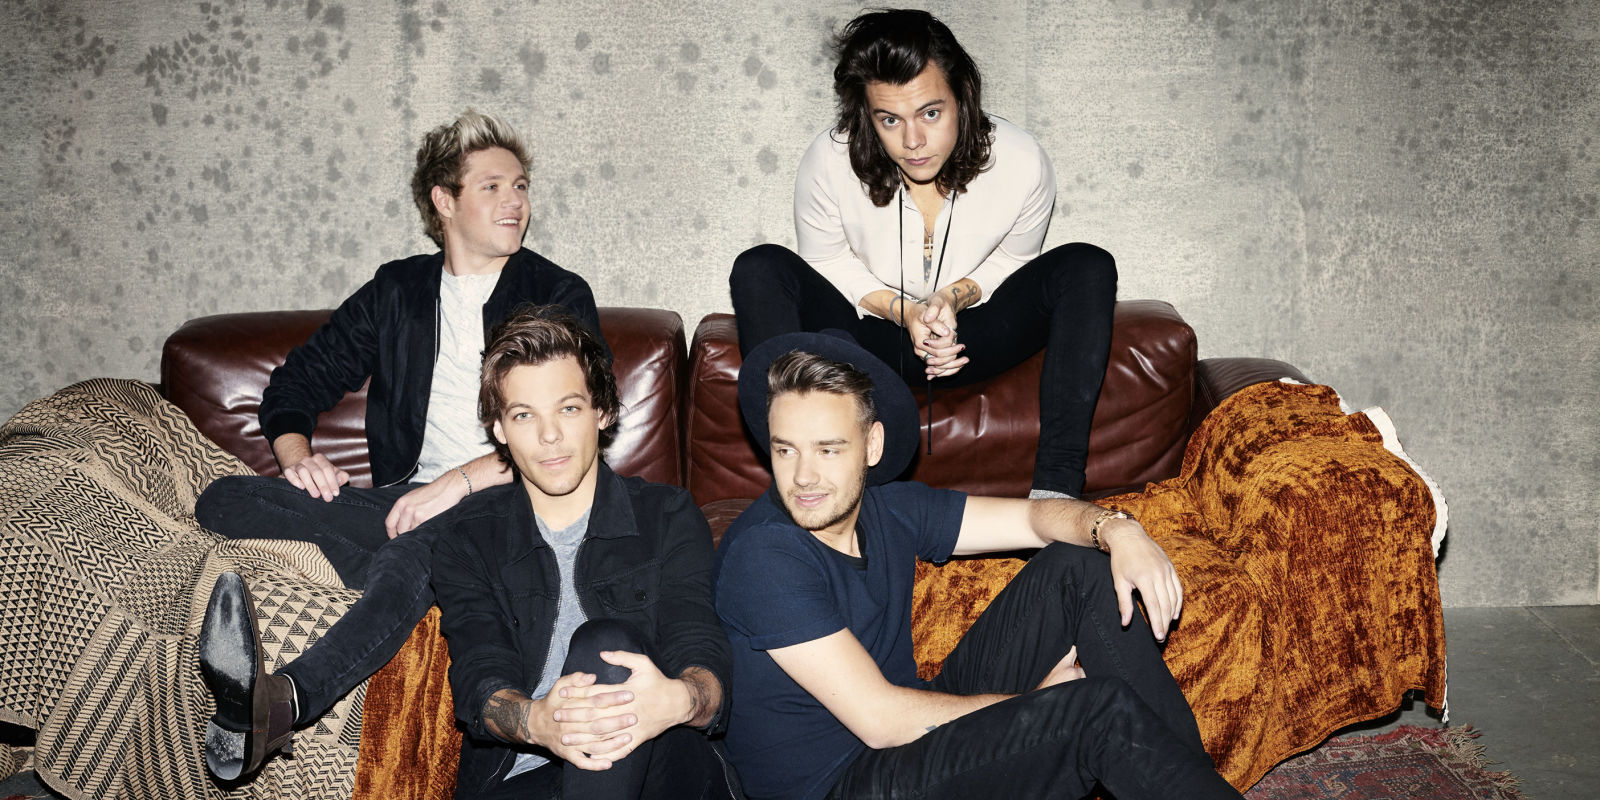 Made In The A - One Direction Wallpaper Laptop Hd - HD Wallpaper